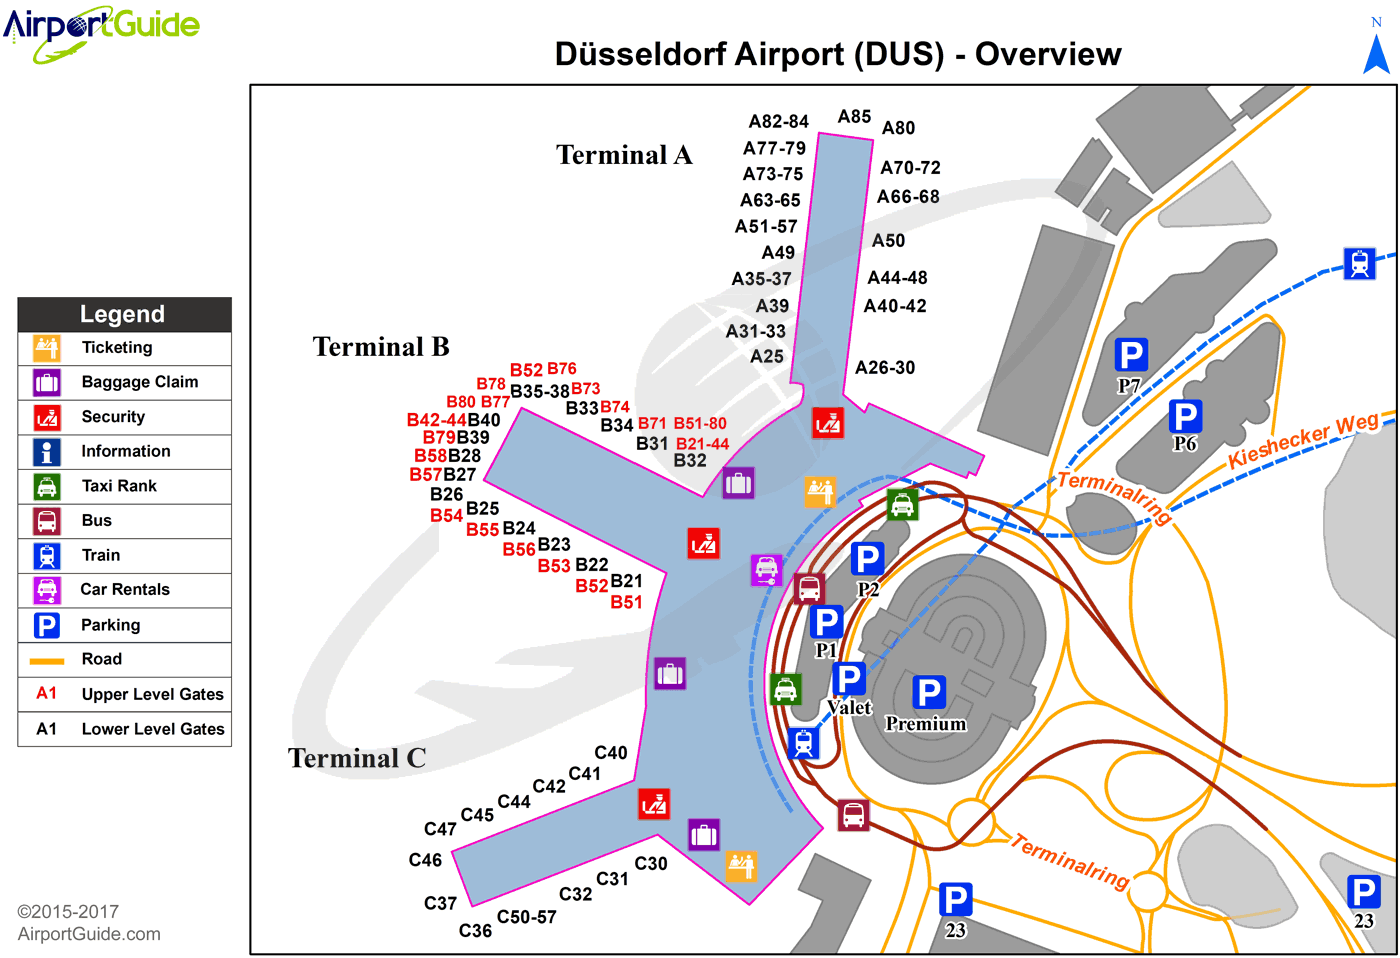 düsseldorf  düsseldorf international (dus) airport terminal map  overview. düsseldorf  düsseldorf international (dus) airport terminal map